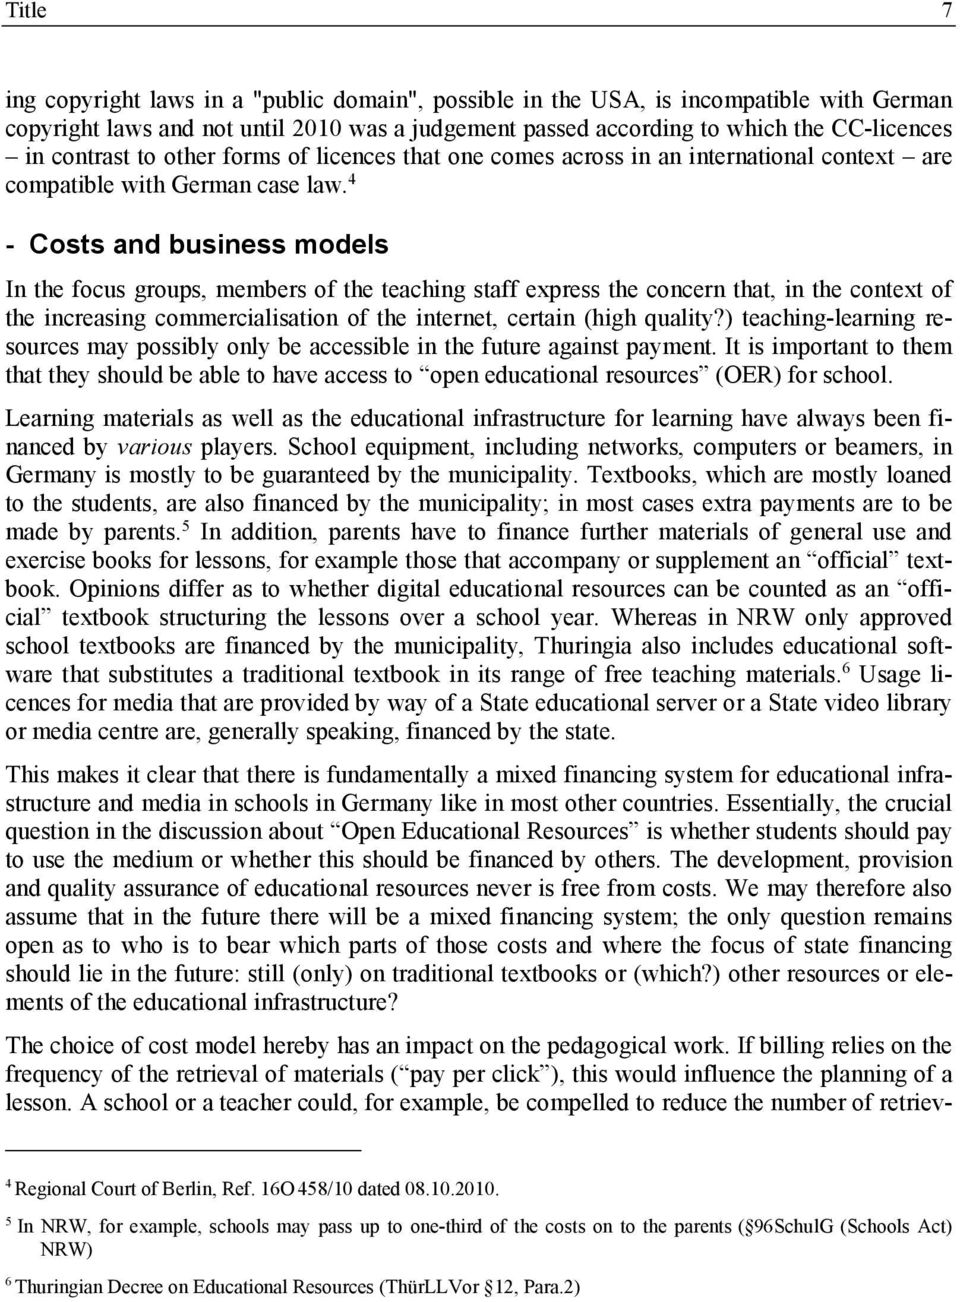 4 - Costs and business models In the focus groups, members of the teaching staff express the concern that, in the context of the increasing commercialisation of the internet, certain (high quality?